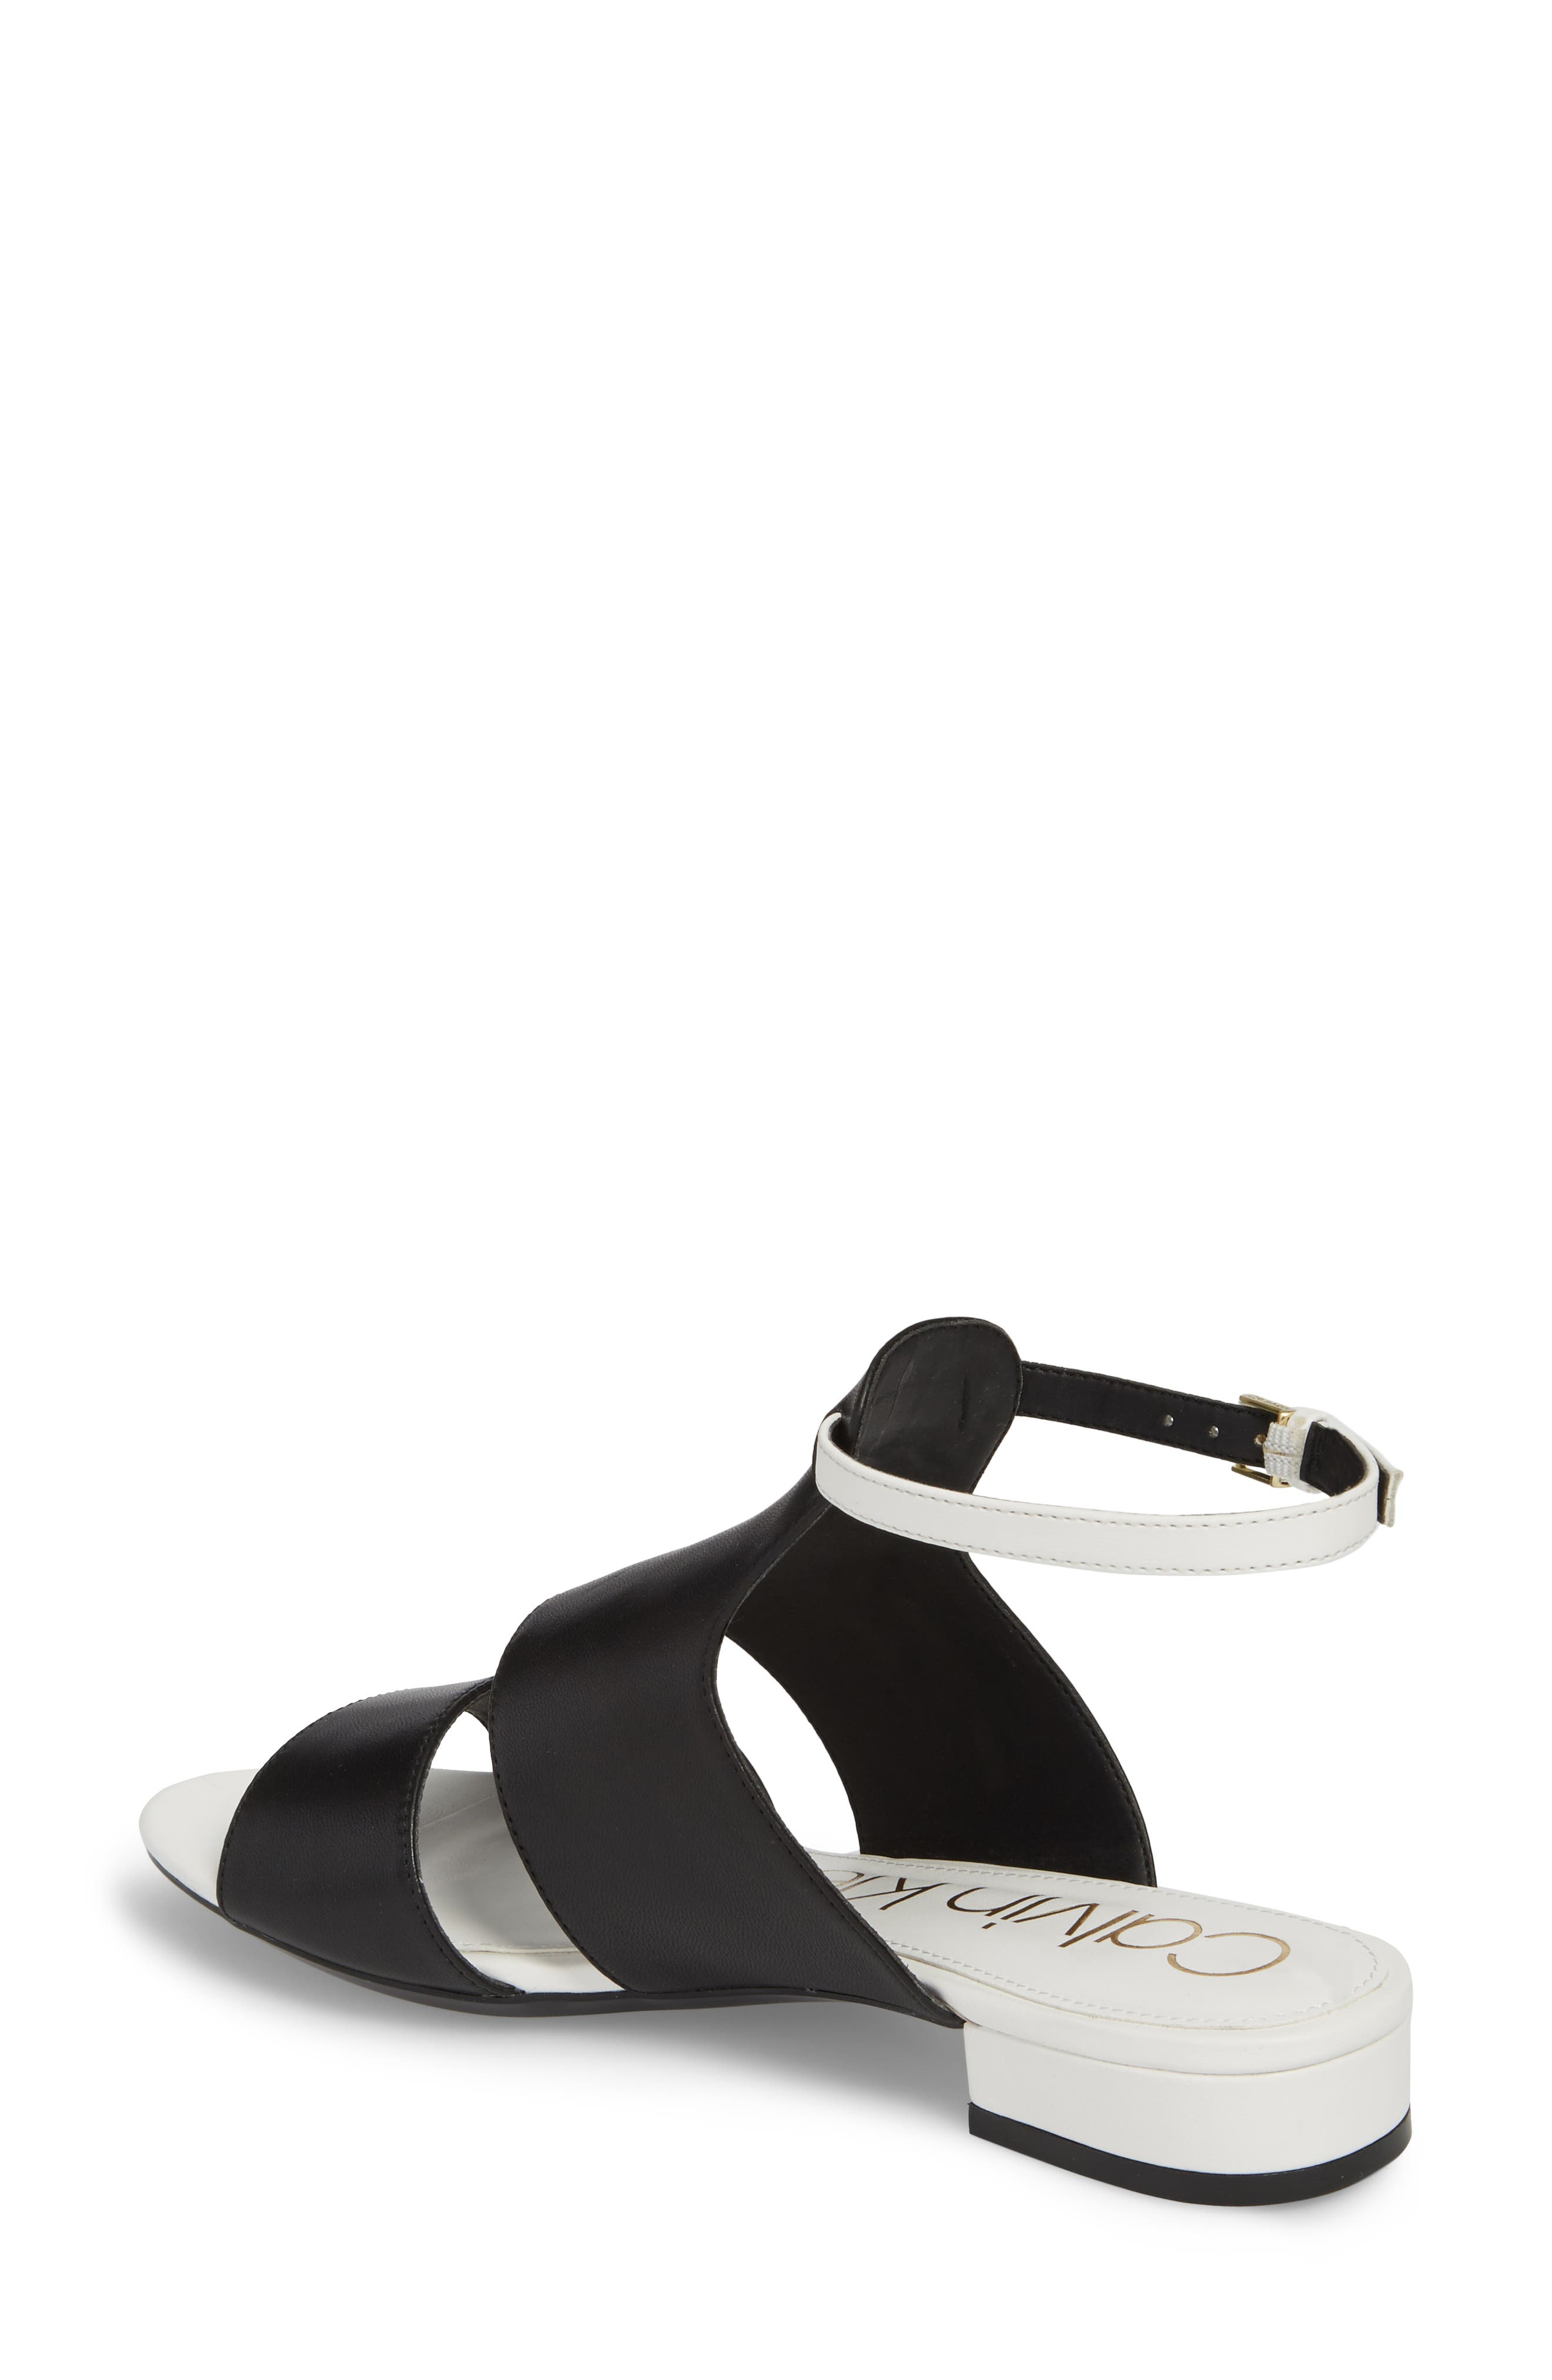 Fernarda Sandal,                             Alternate thumbnail 2, color,                             Black Leather